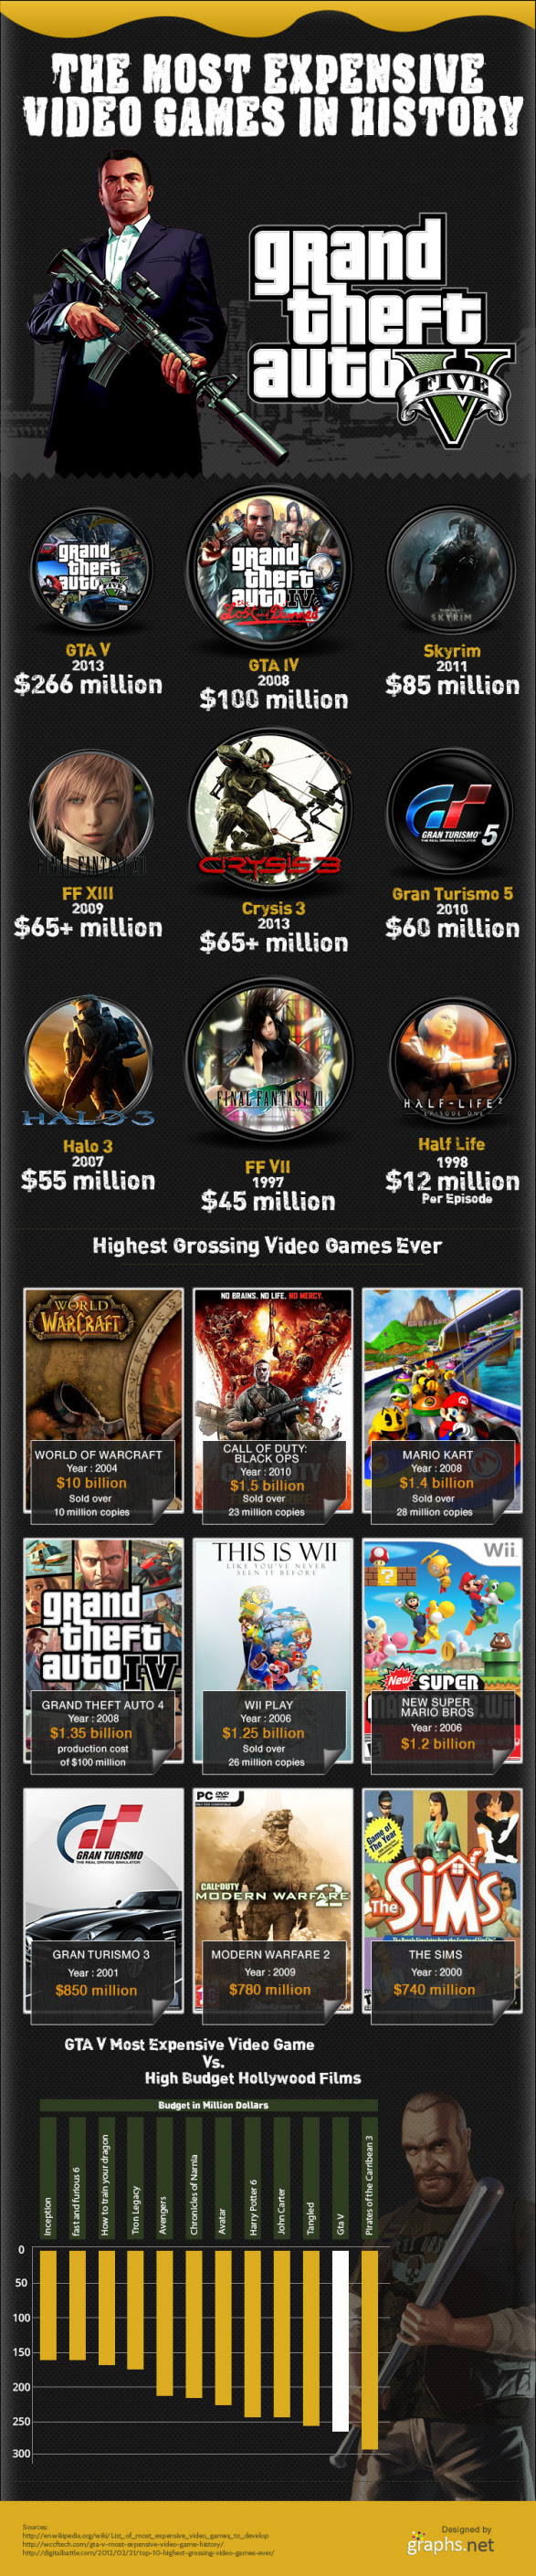 Most Expensive Video Games In History